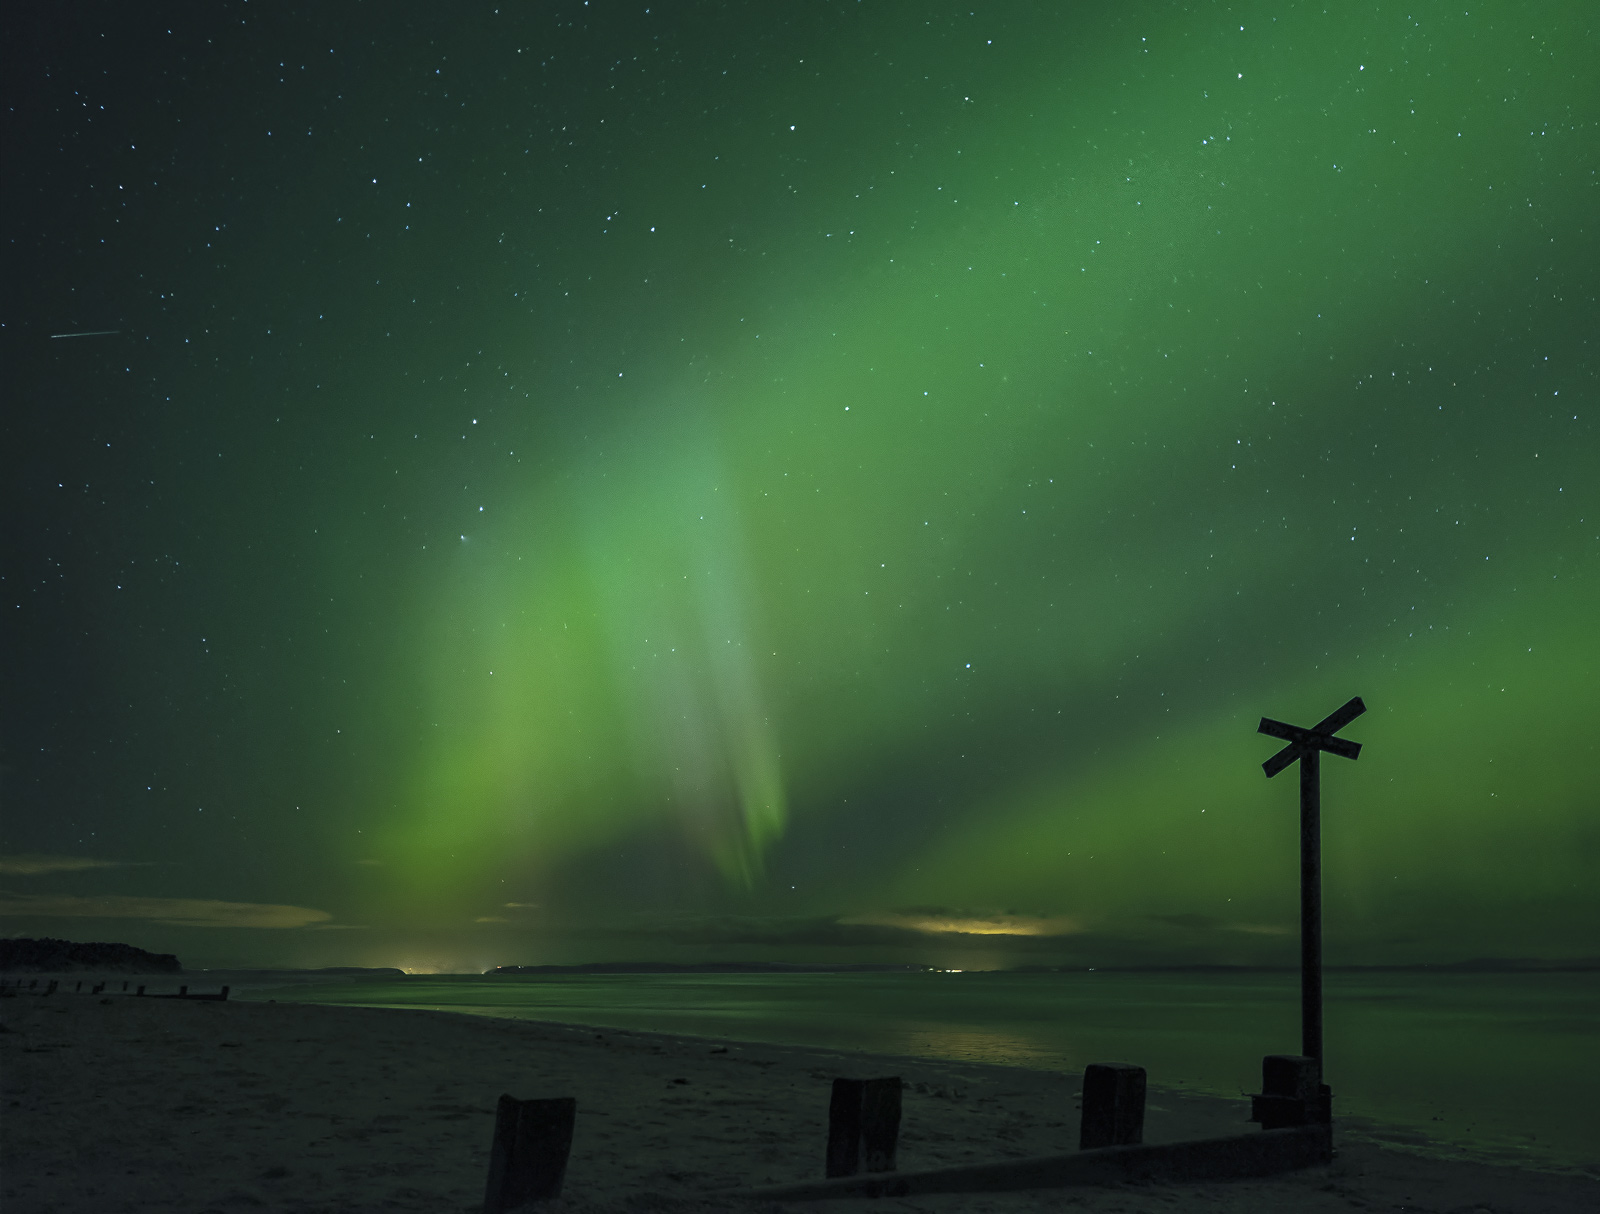 A fantastic Northern Lights display produced one of the most vivid displays I have seen over Findhorn bay on the Moray coast.&...